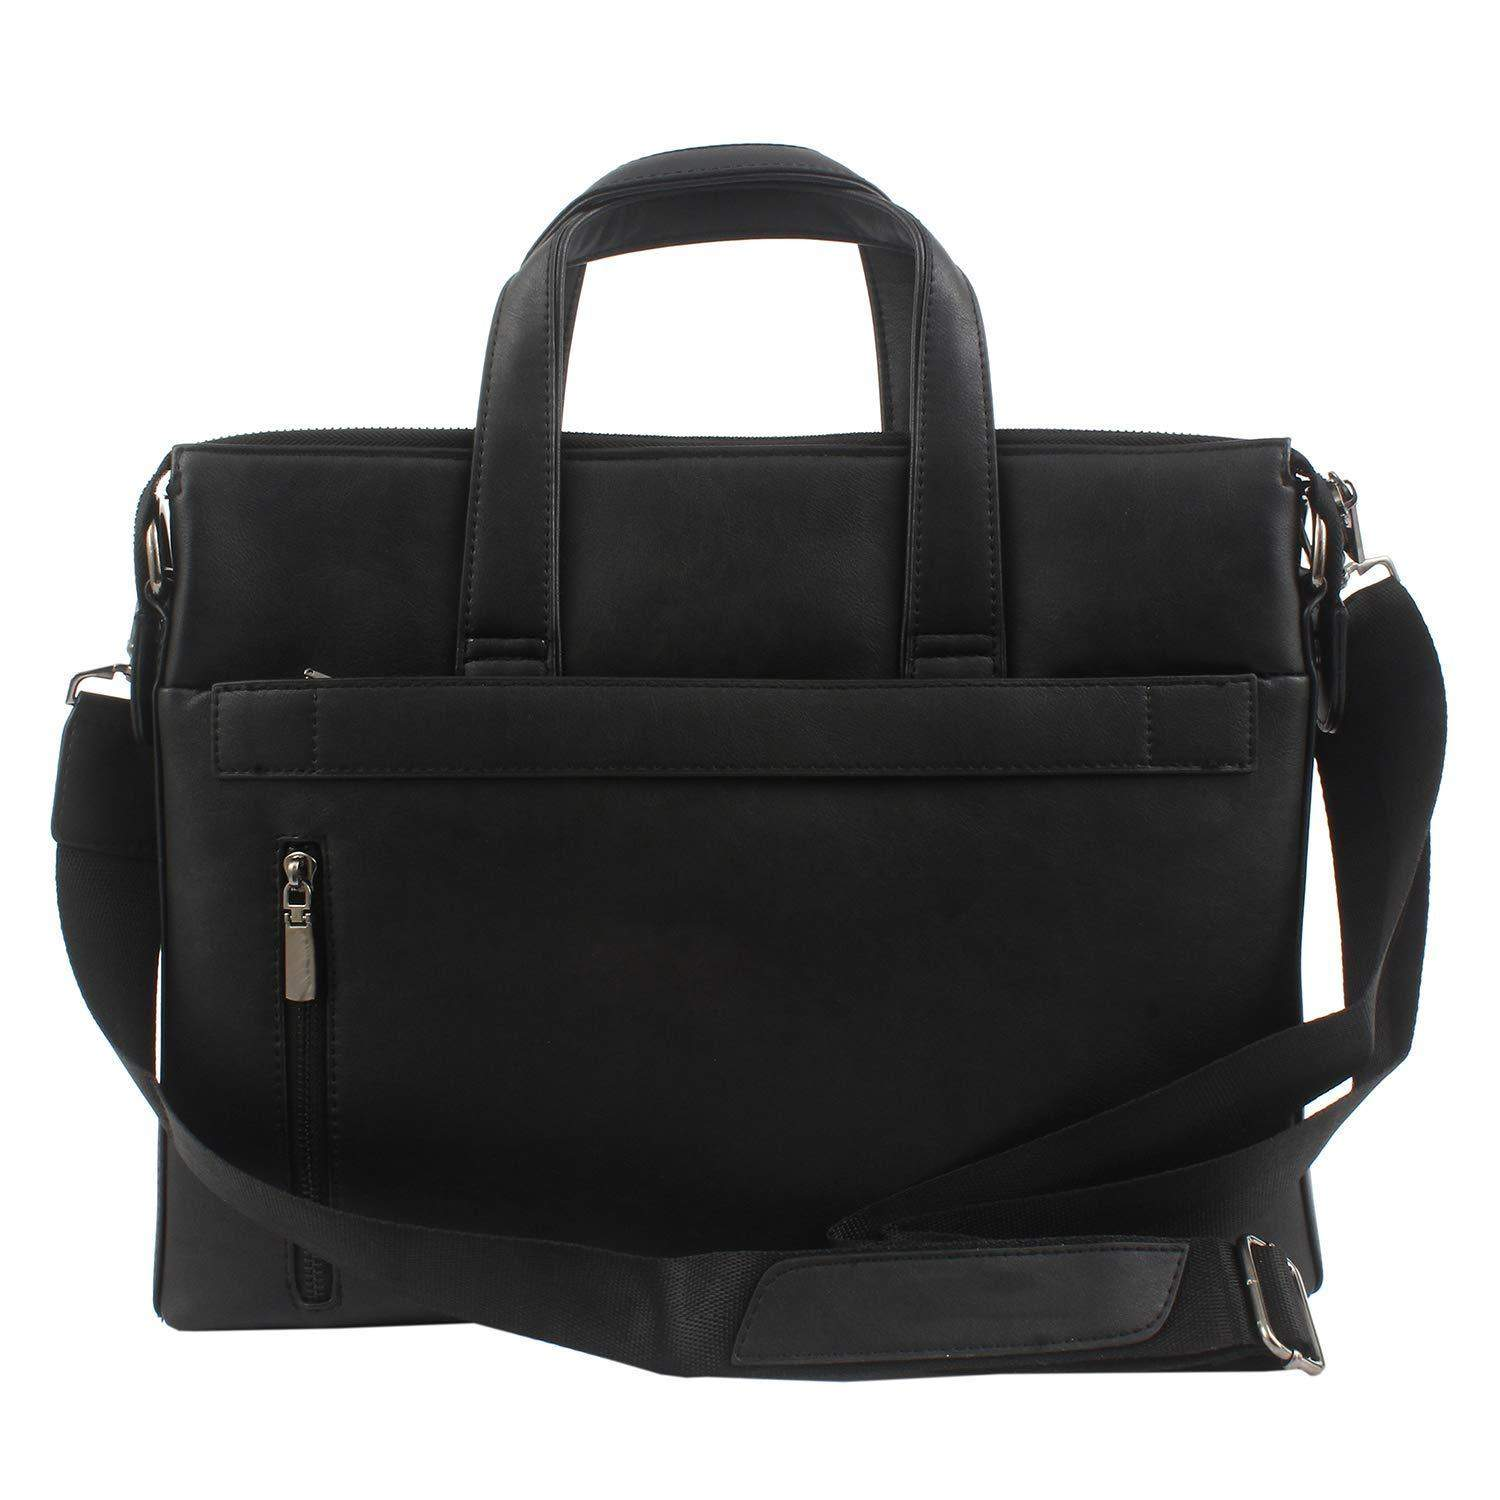 Pu Leather Office Bag Messenger Bag Laptop Bag (Black) - Bagaholics Gift